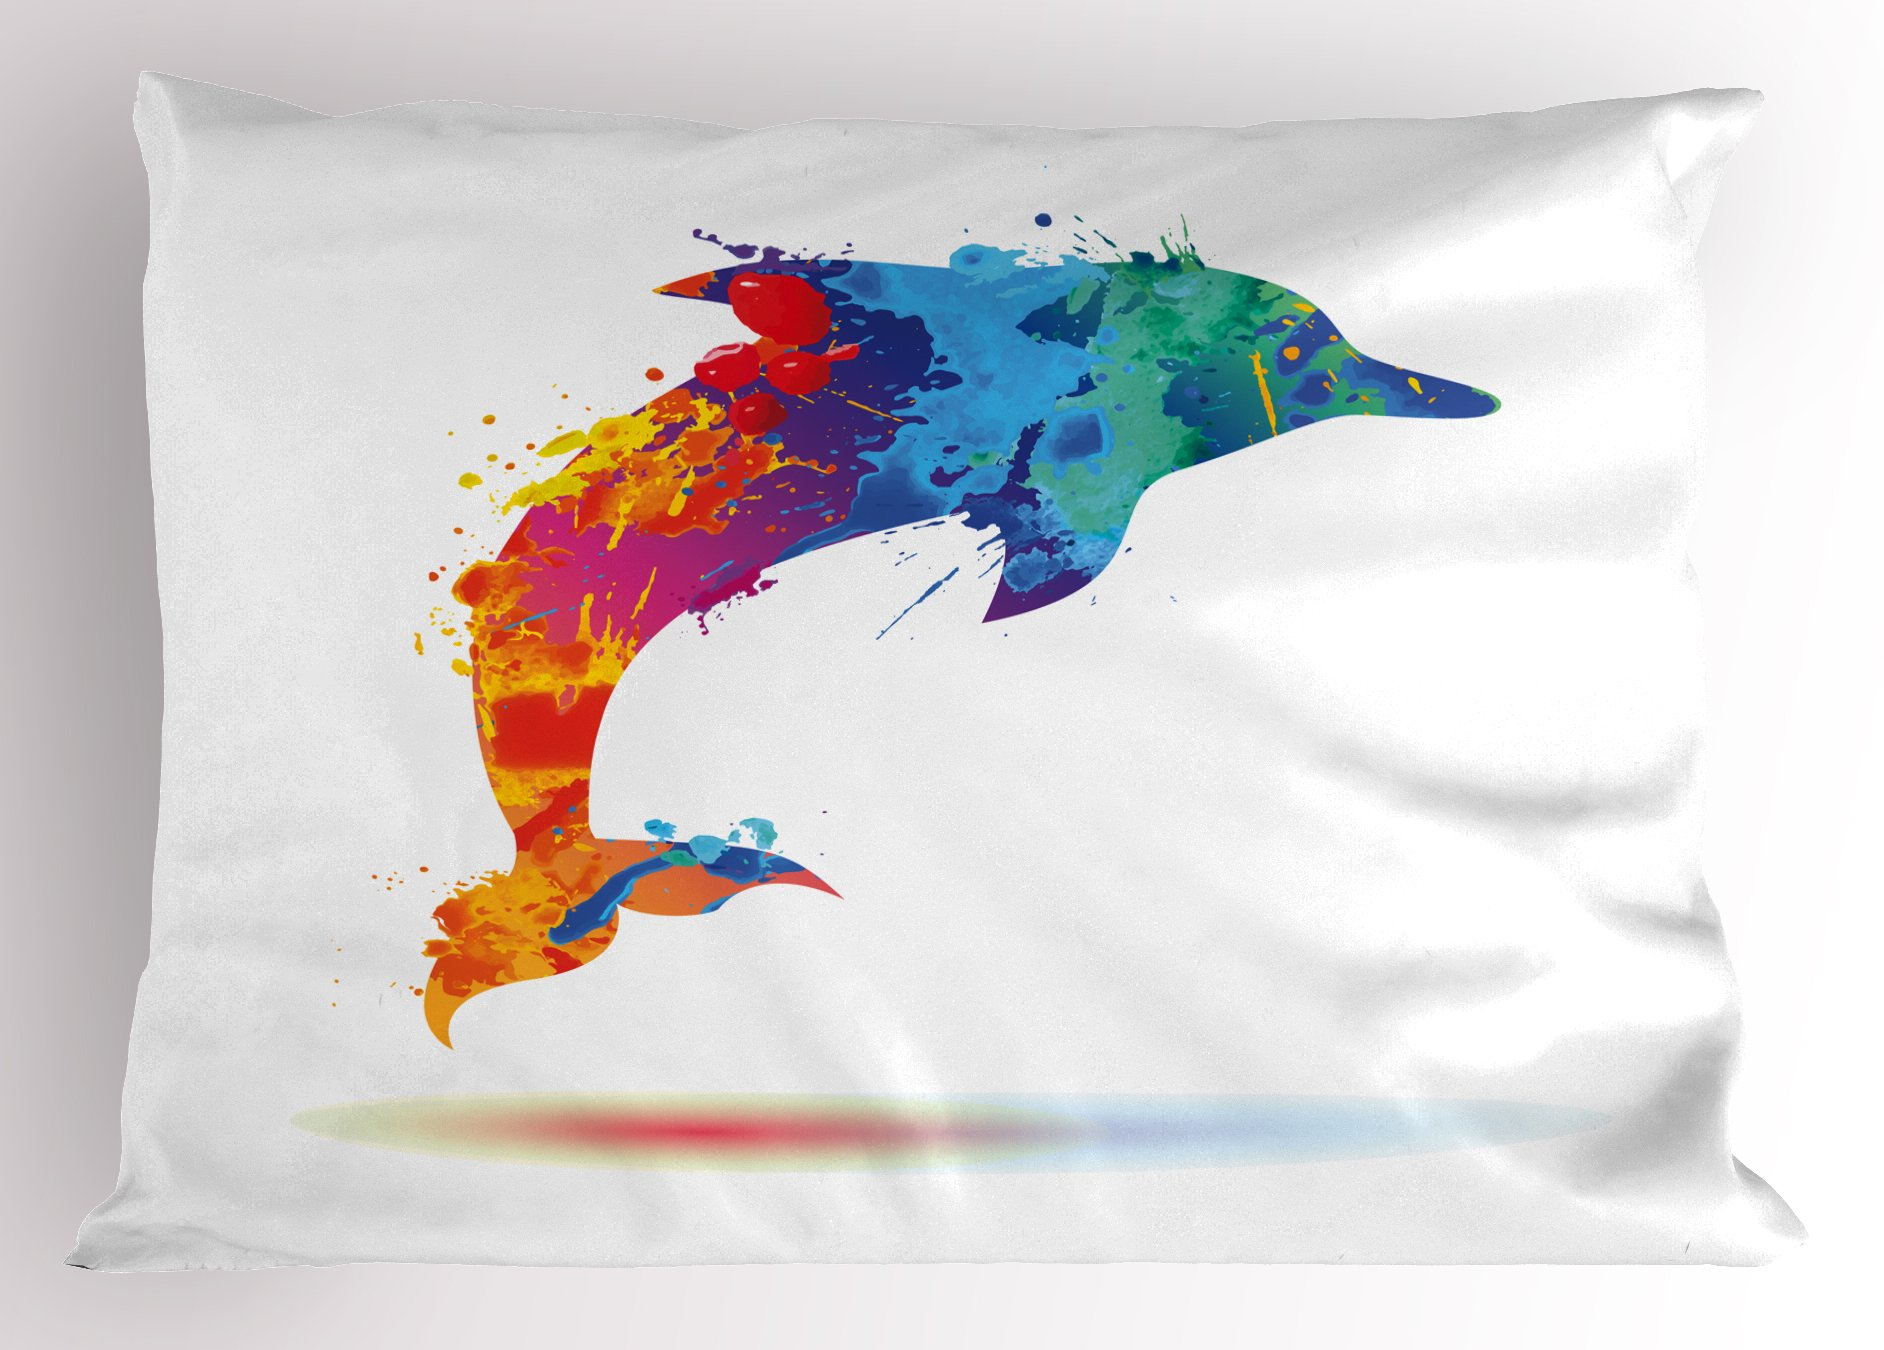 Ambesonne Dolphin Pillow Sham, Multicolored Animal Design Watercolor Pattern Vibrant Ocean Mammal Image Print, Decorative Standard King Size Printed Pillowcase, 36 X 20 inches, Multicolor